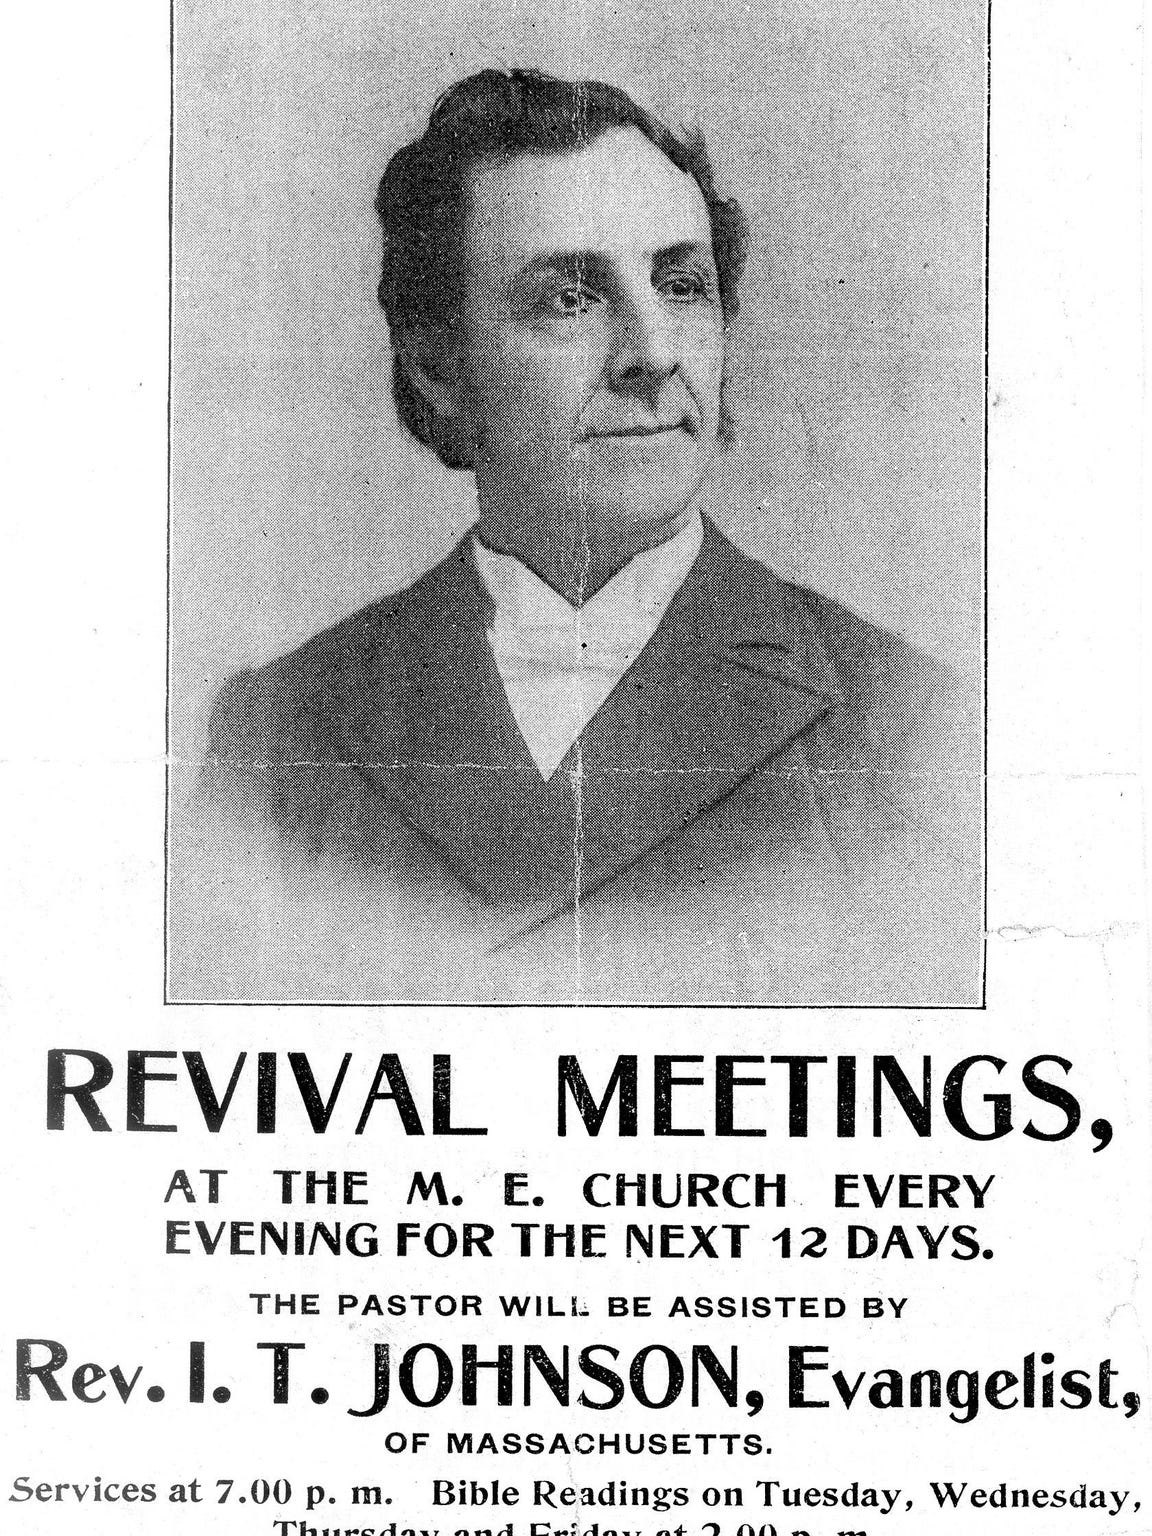 A poster from 1899 advertises a revival meeting and